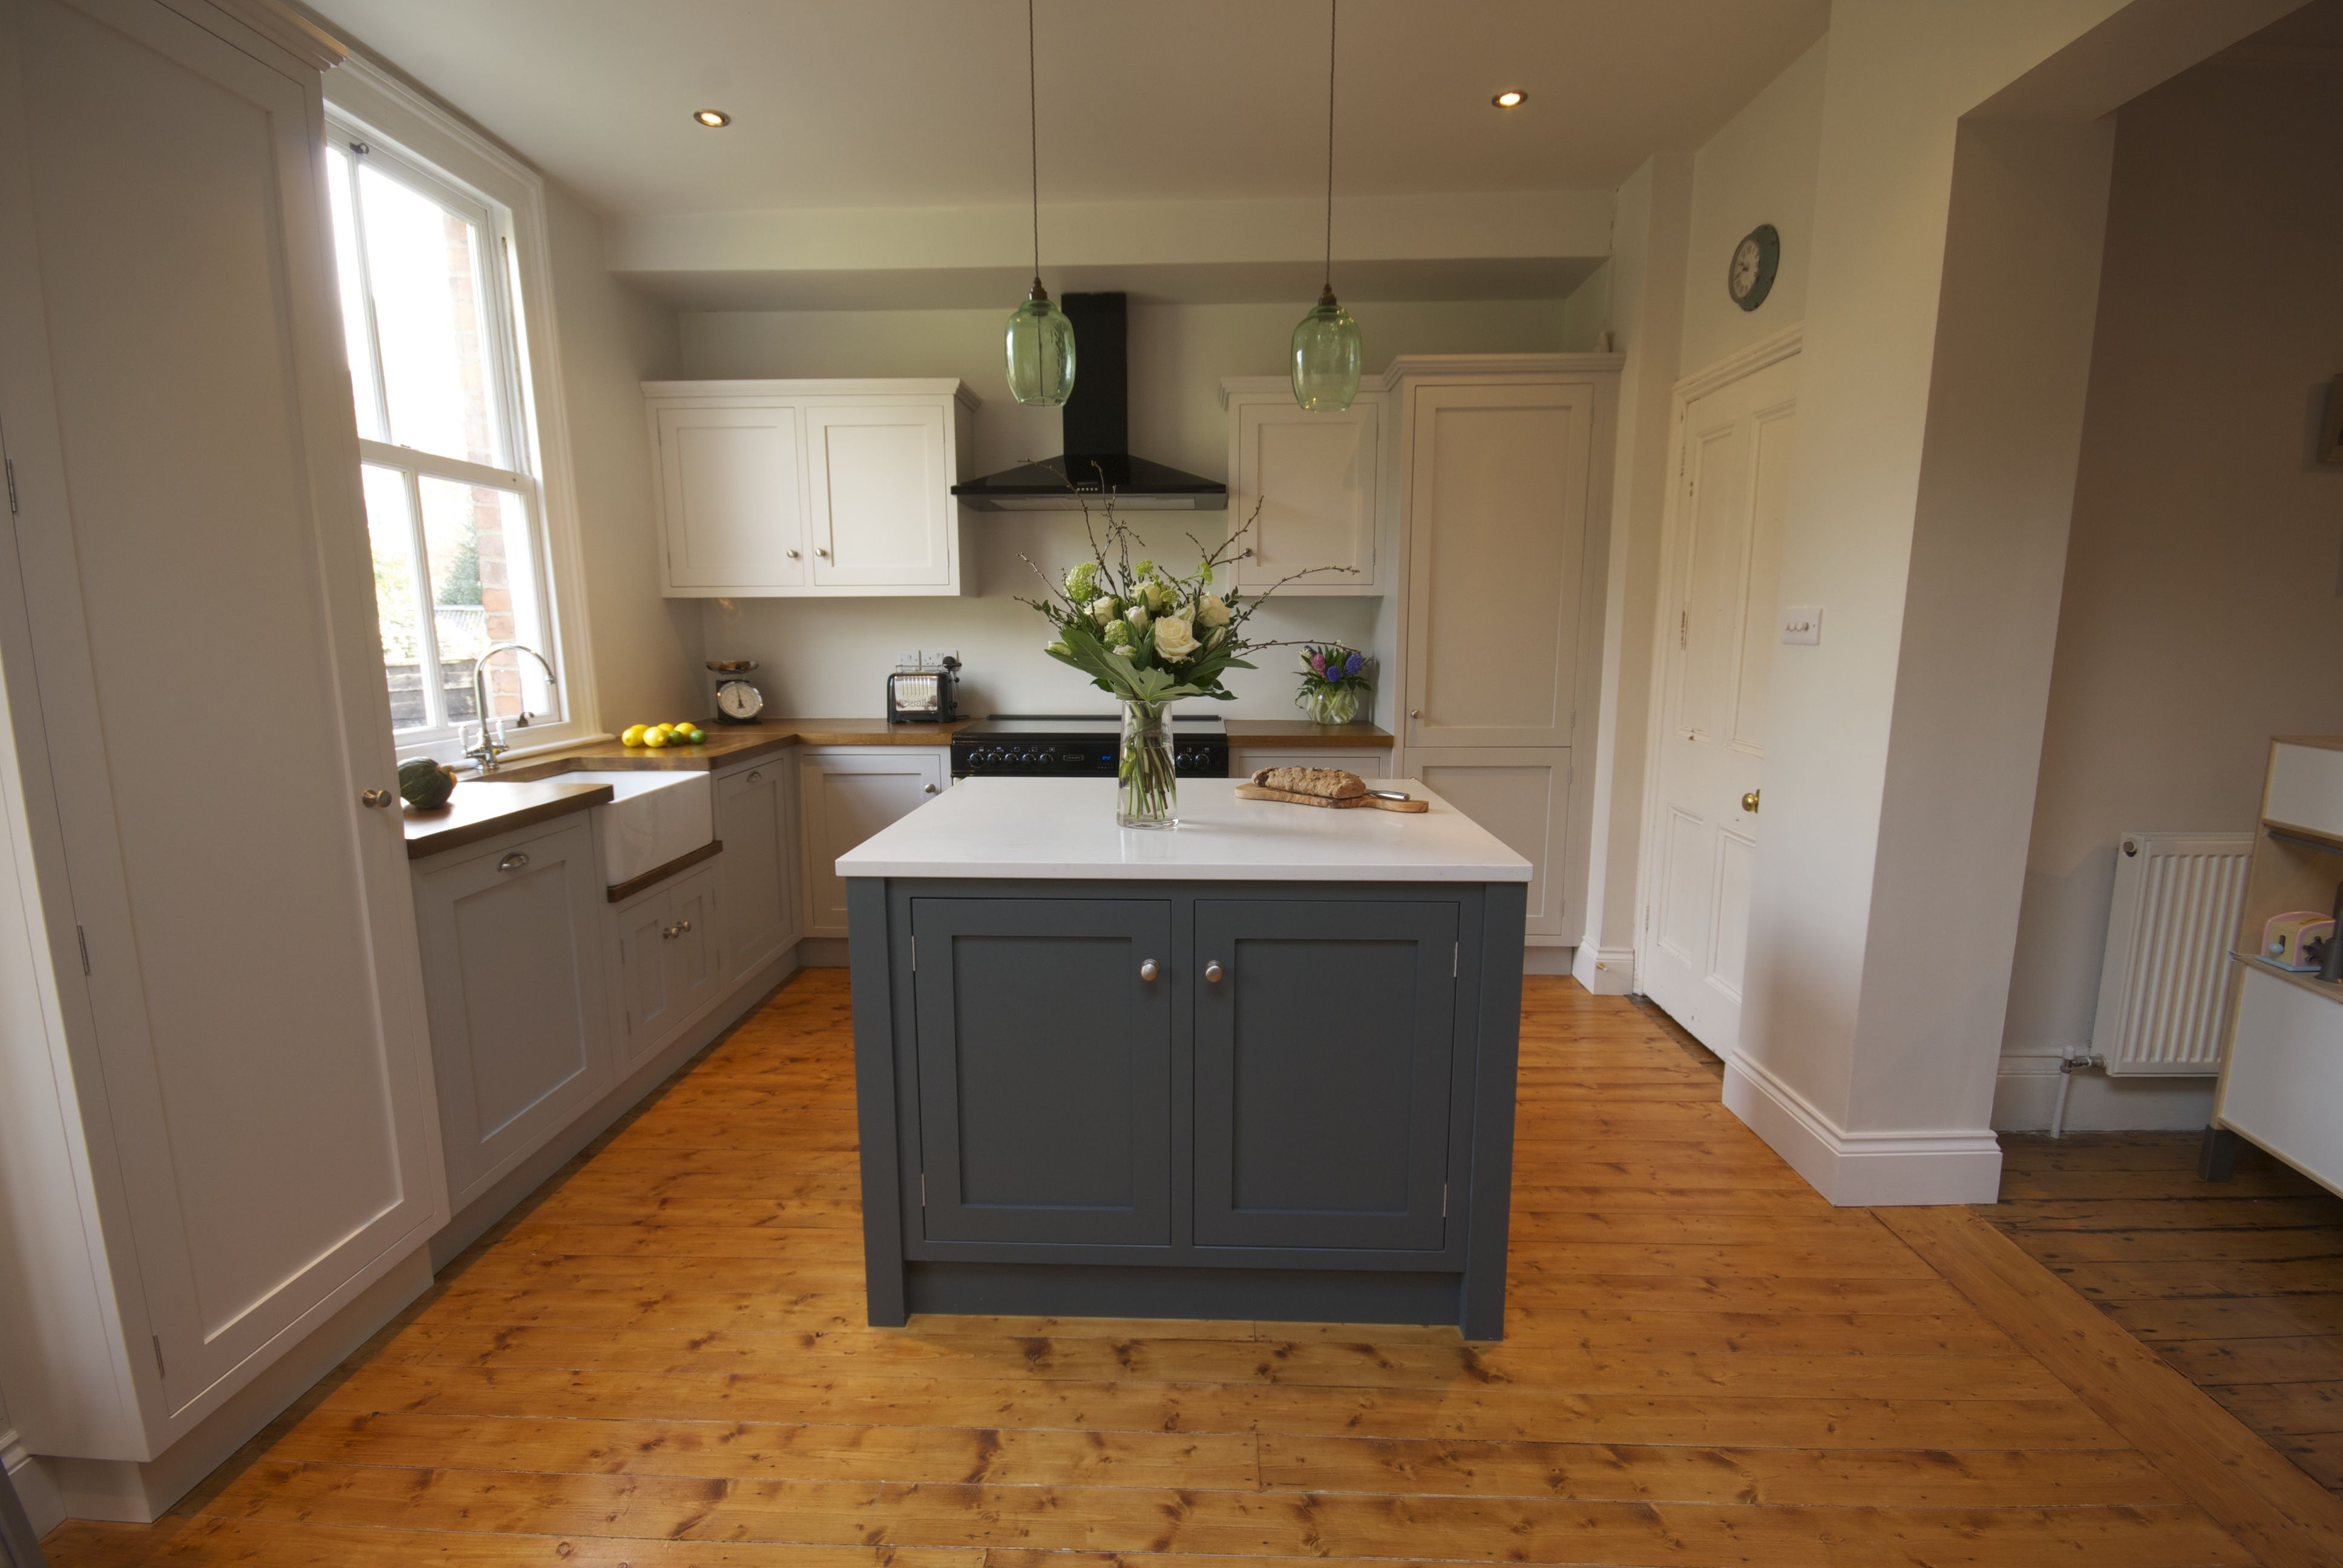 Best Wooden Handmade Kitchen Farrow And Ball Moles Breath And 400 x 300